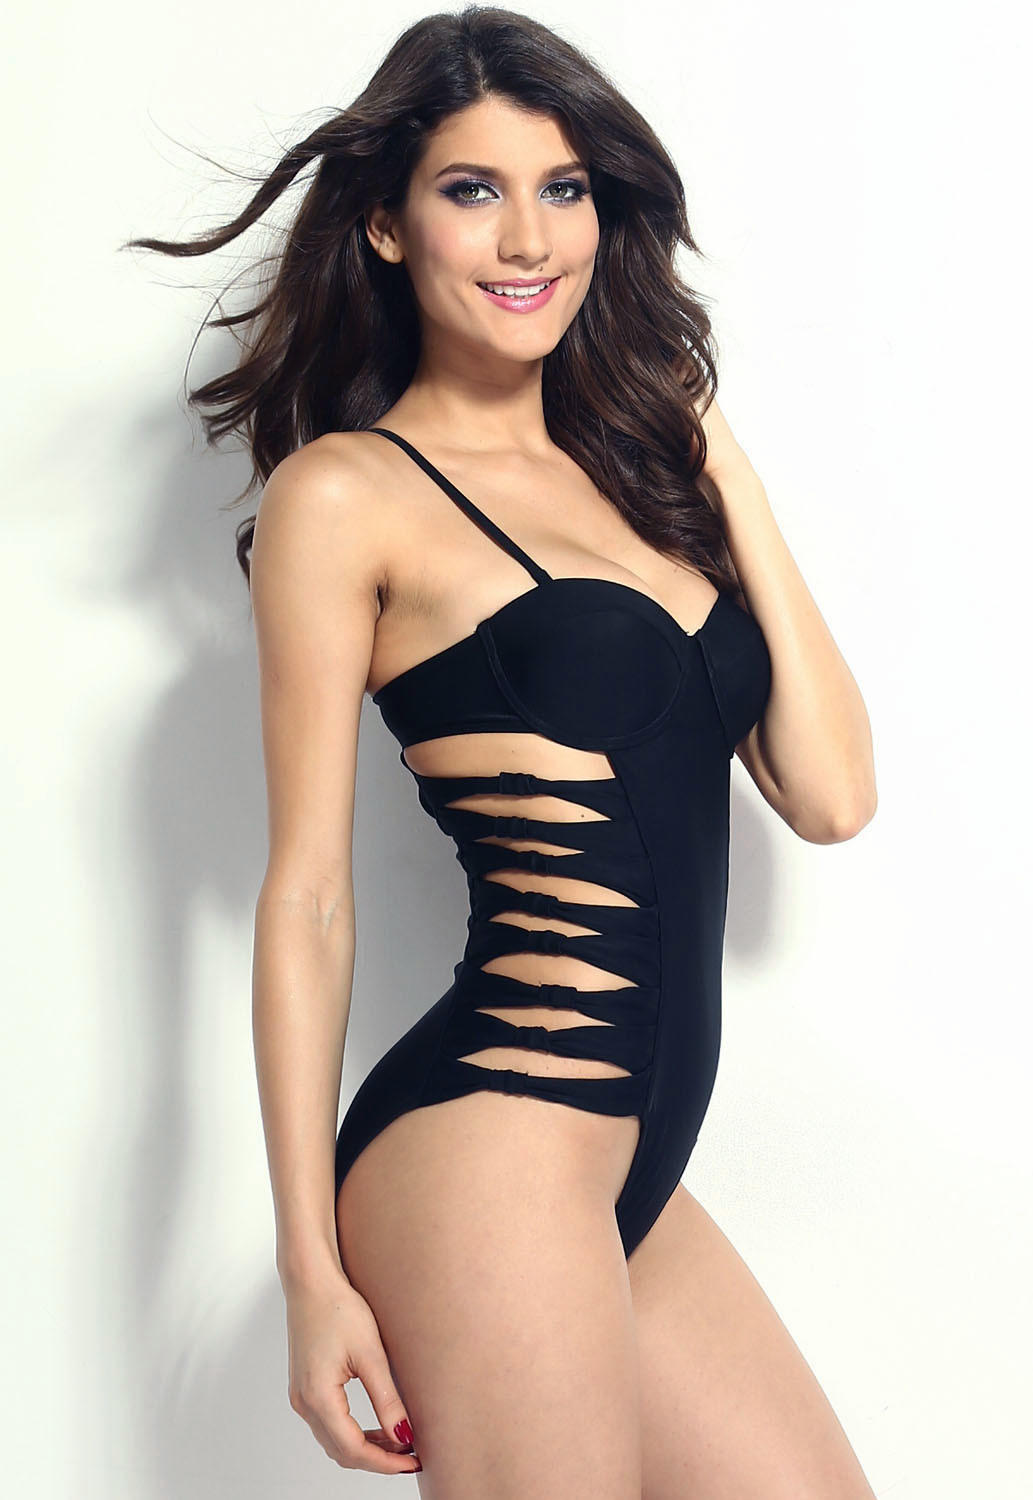 ac1bcbbf230e0 Black Push-up Cut-out One Piece Swimsuit